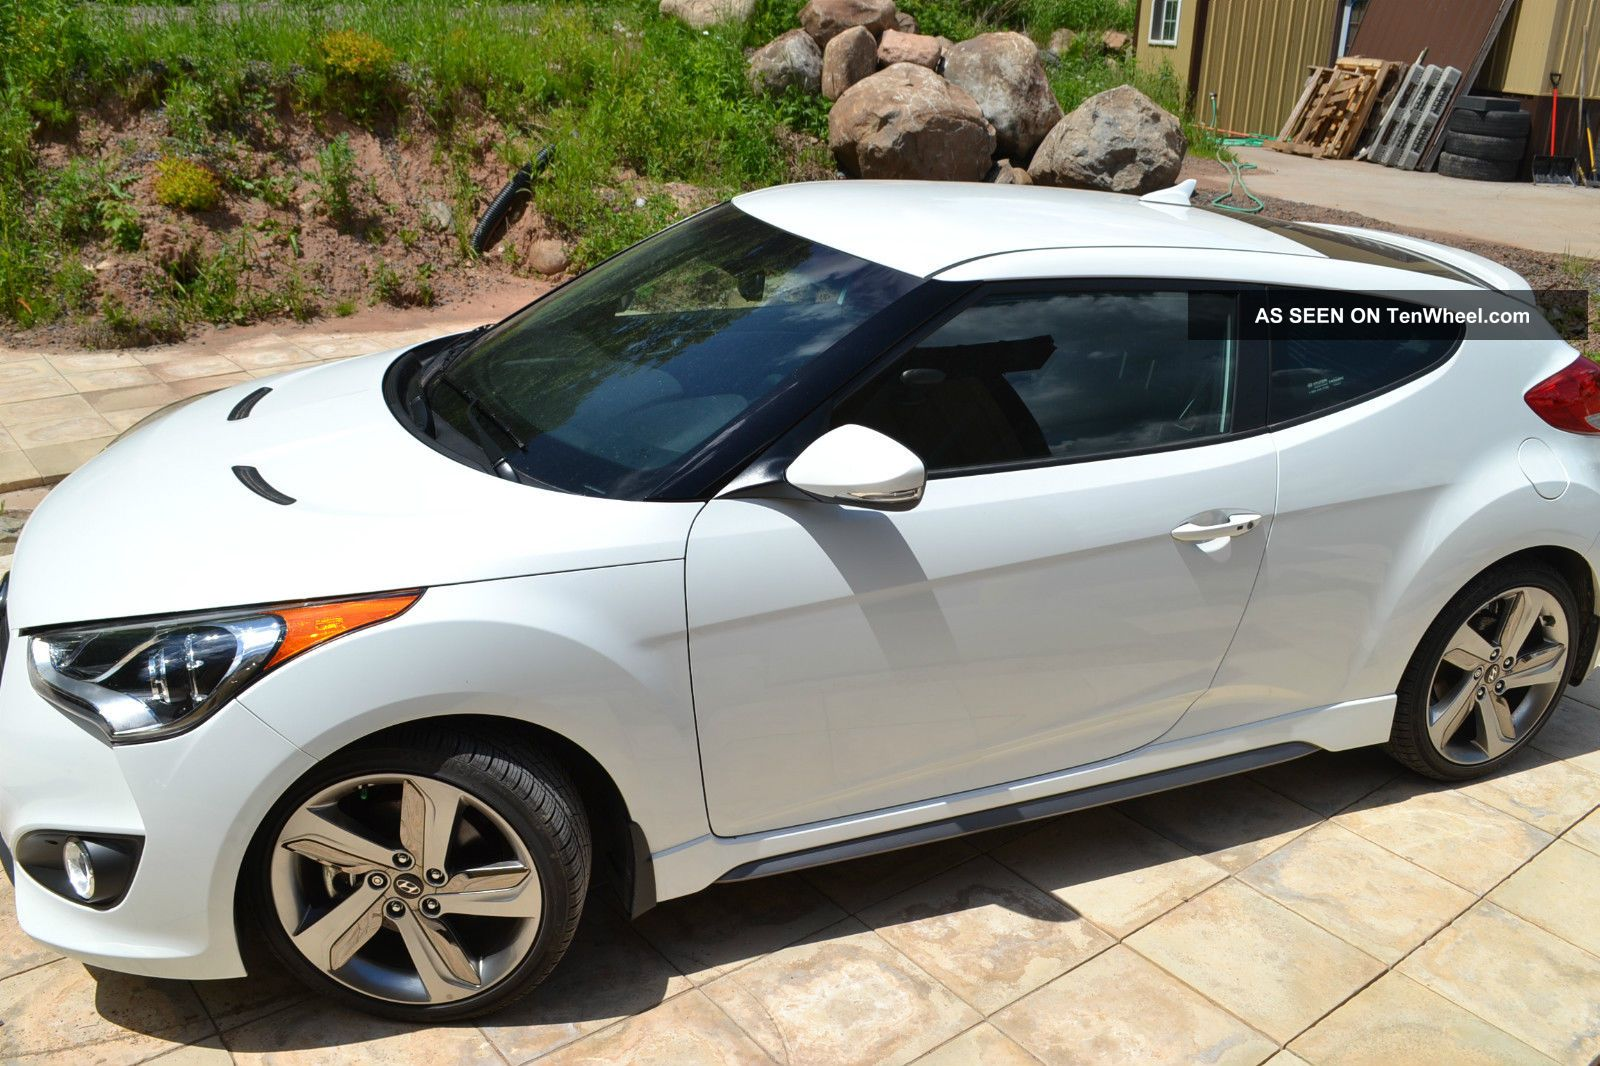 2013 Hyundai Veloster Turbo - Pearl White - Black / Blue Interior,  6 Spd Veloster photo